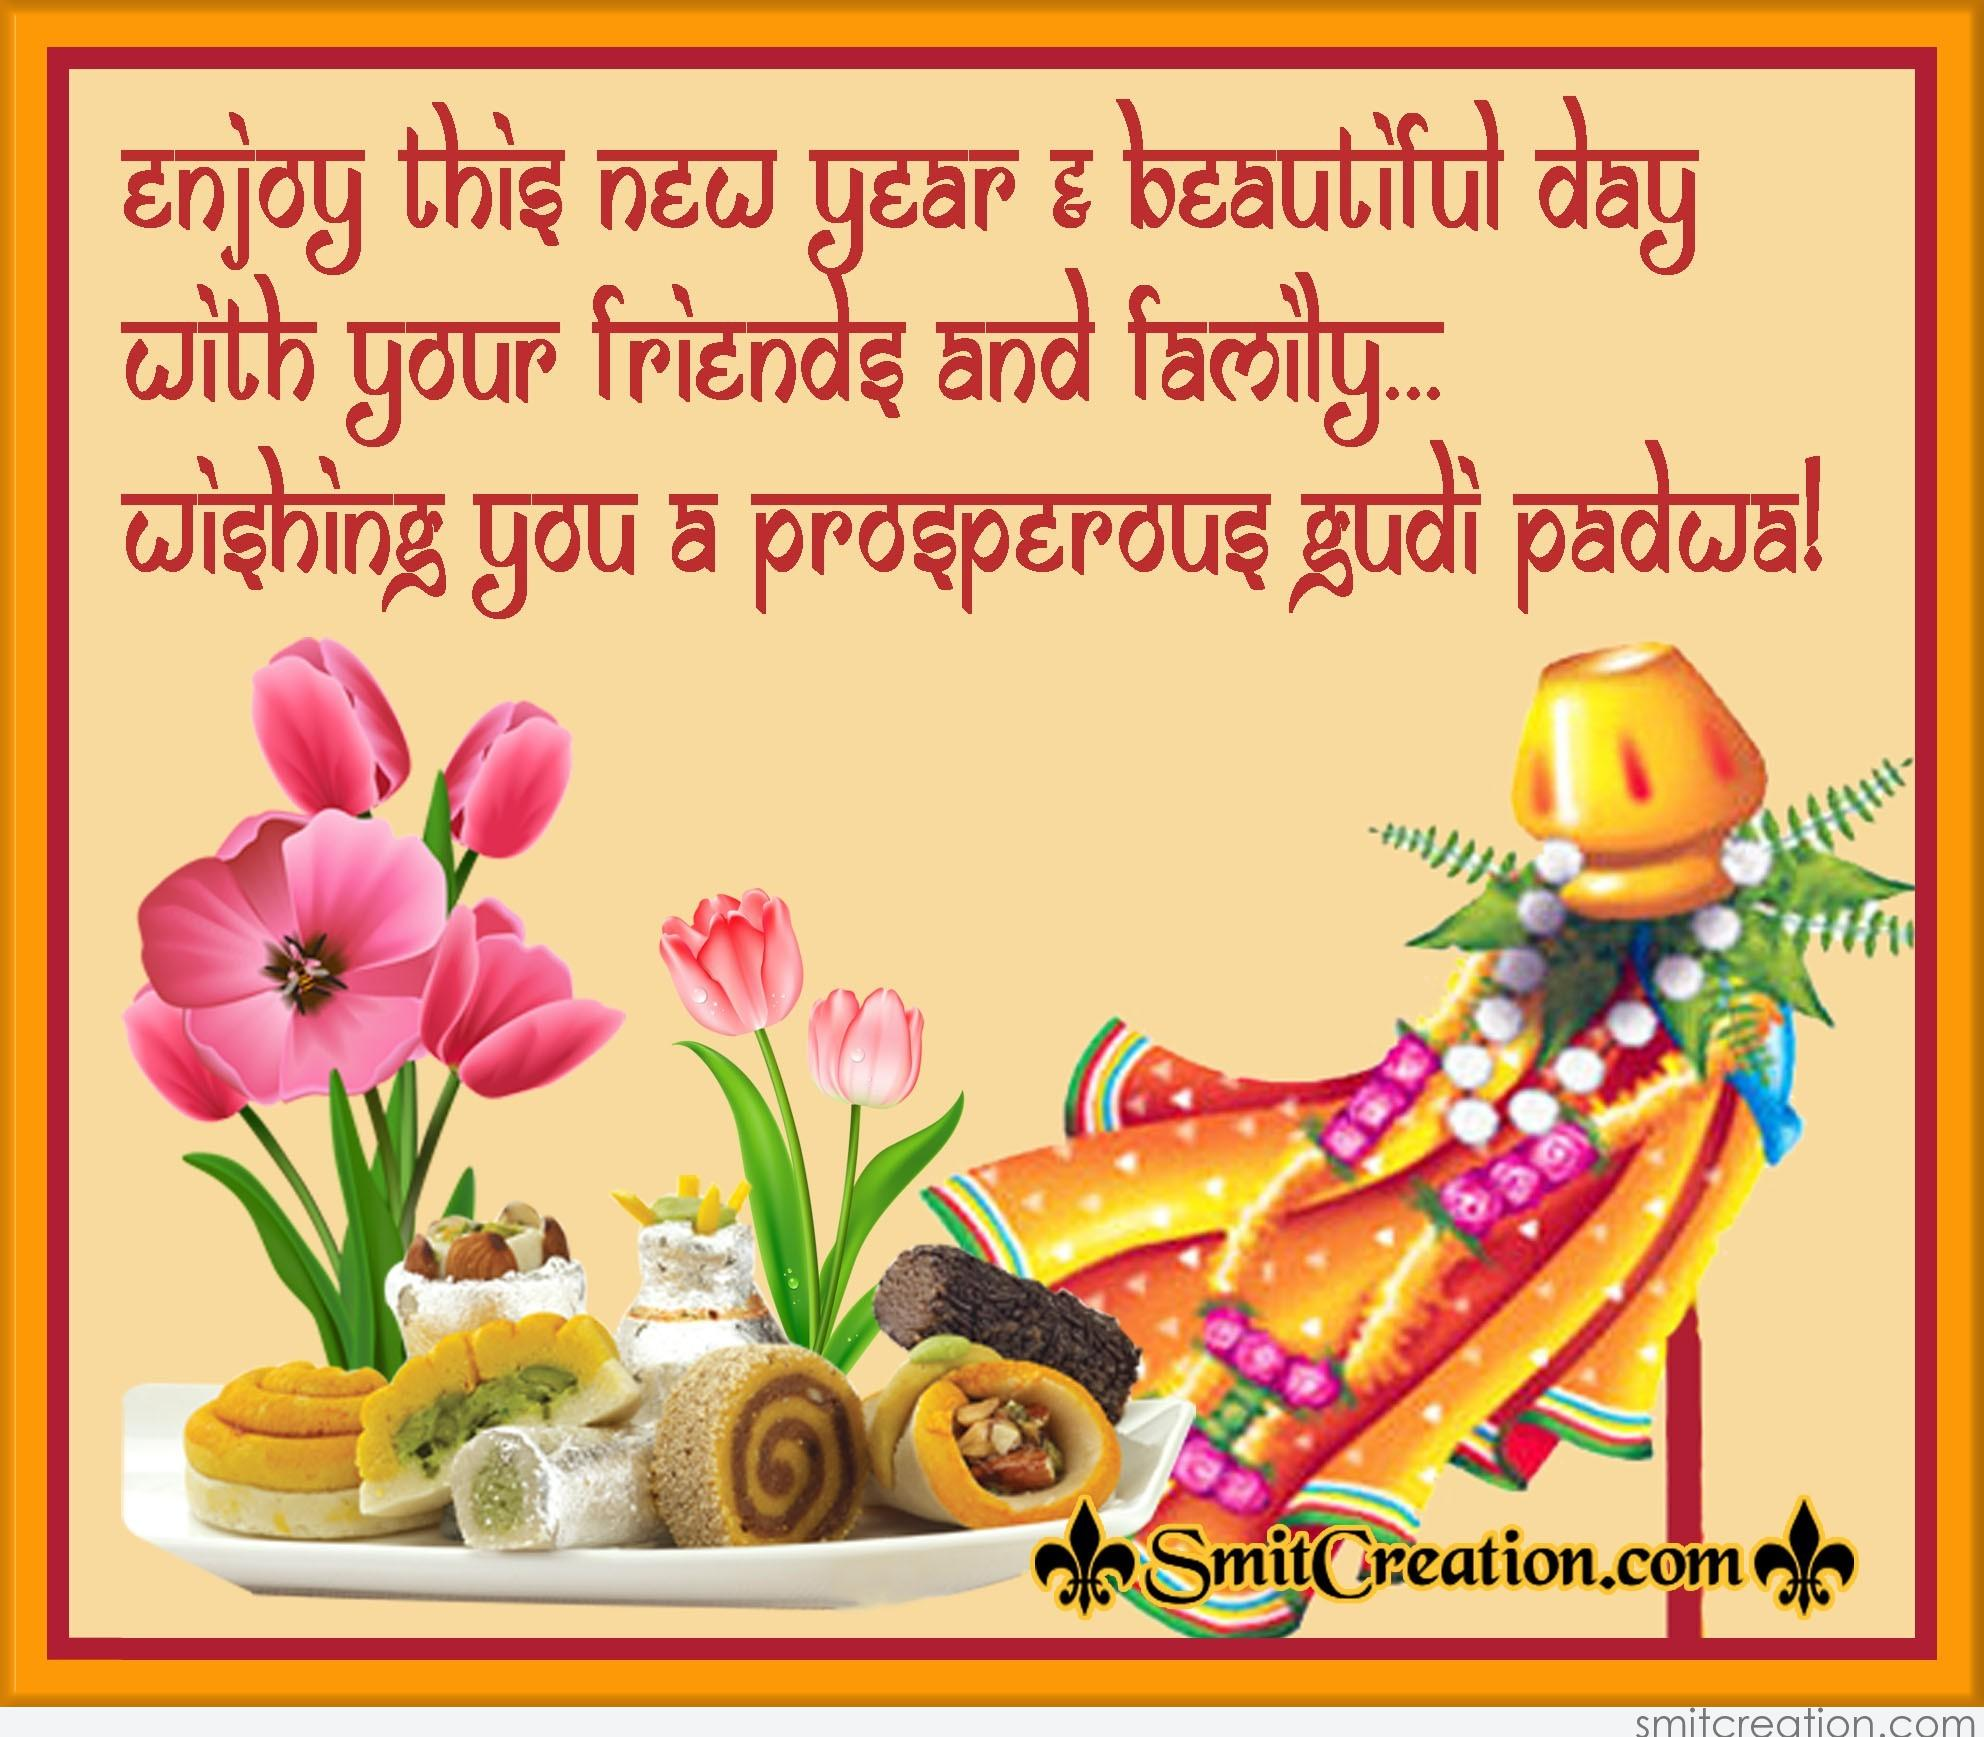 Gudi Padwa Pictures And Graphics Smitcreation Page 3